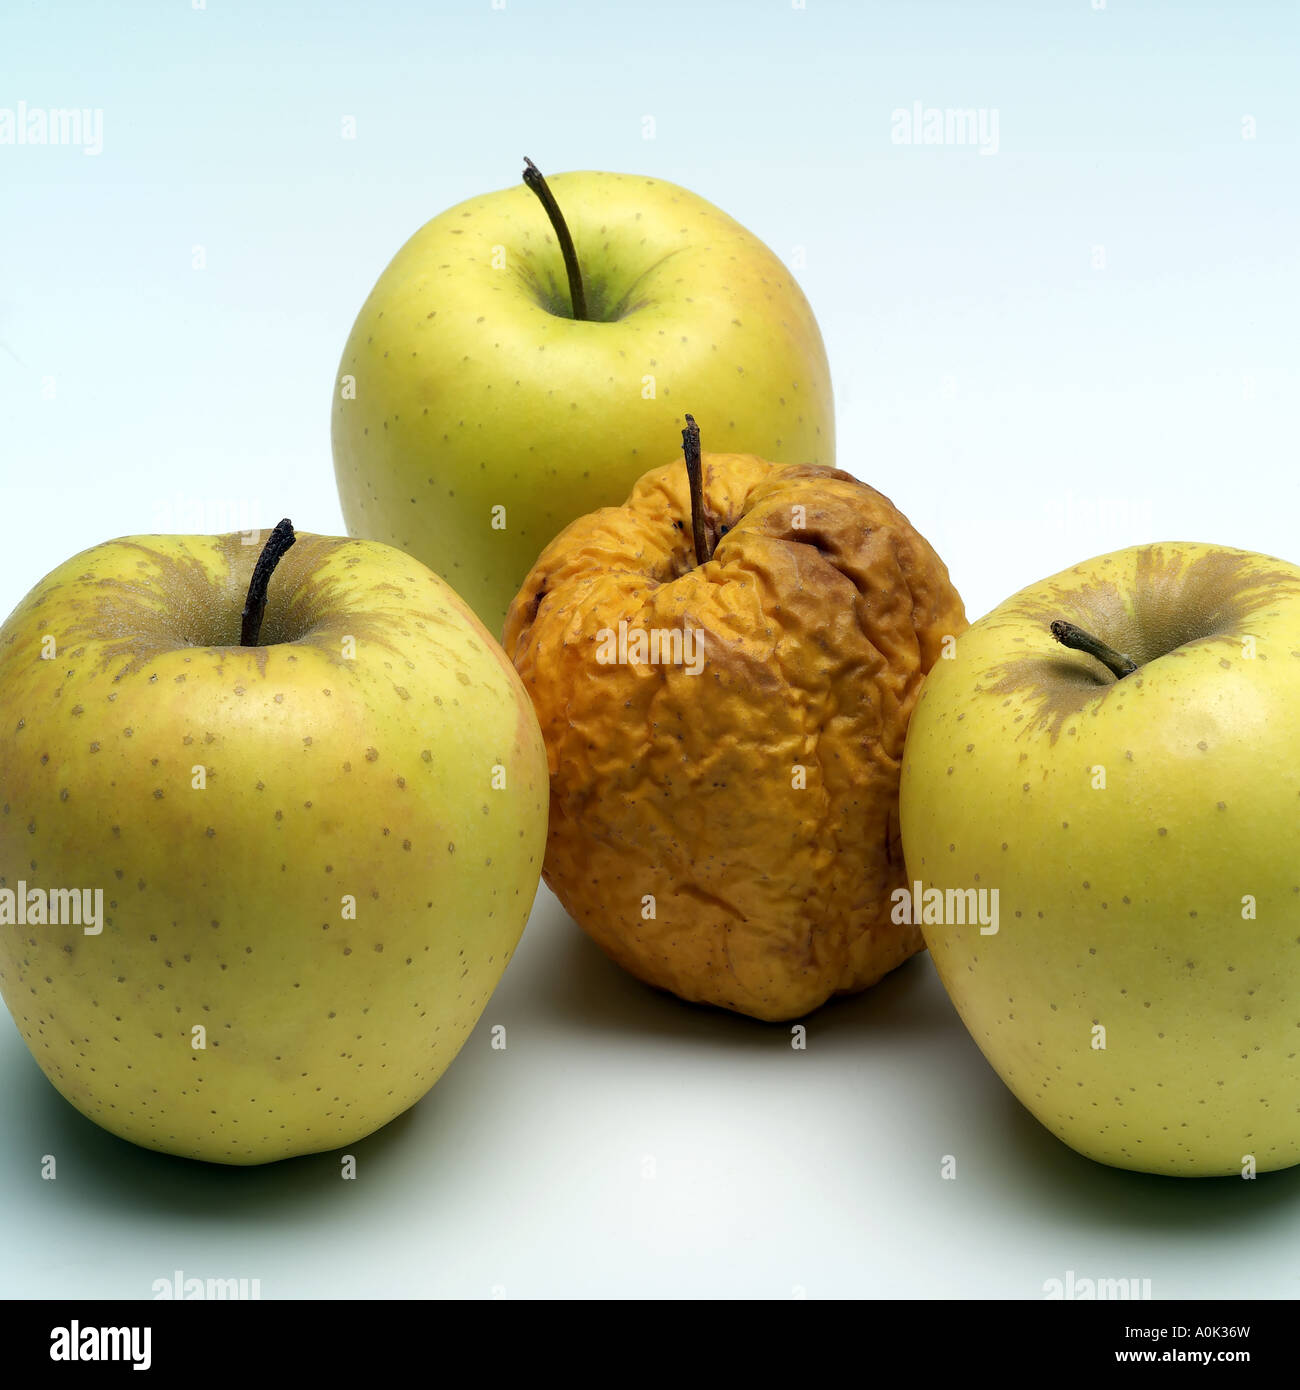 Three fresh and one crumpled Golden Delicious apples - Stock Image